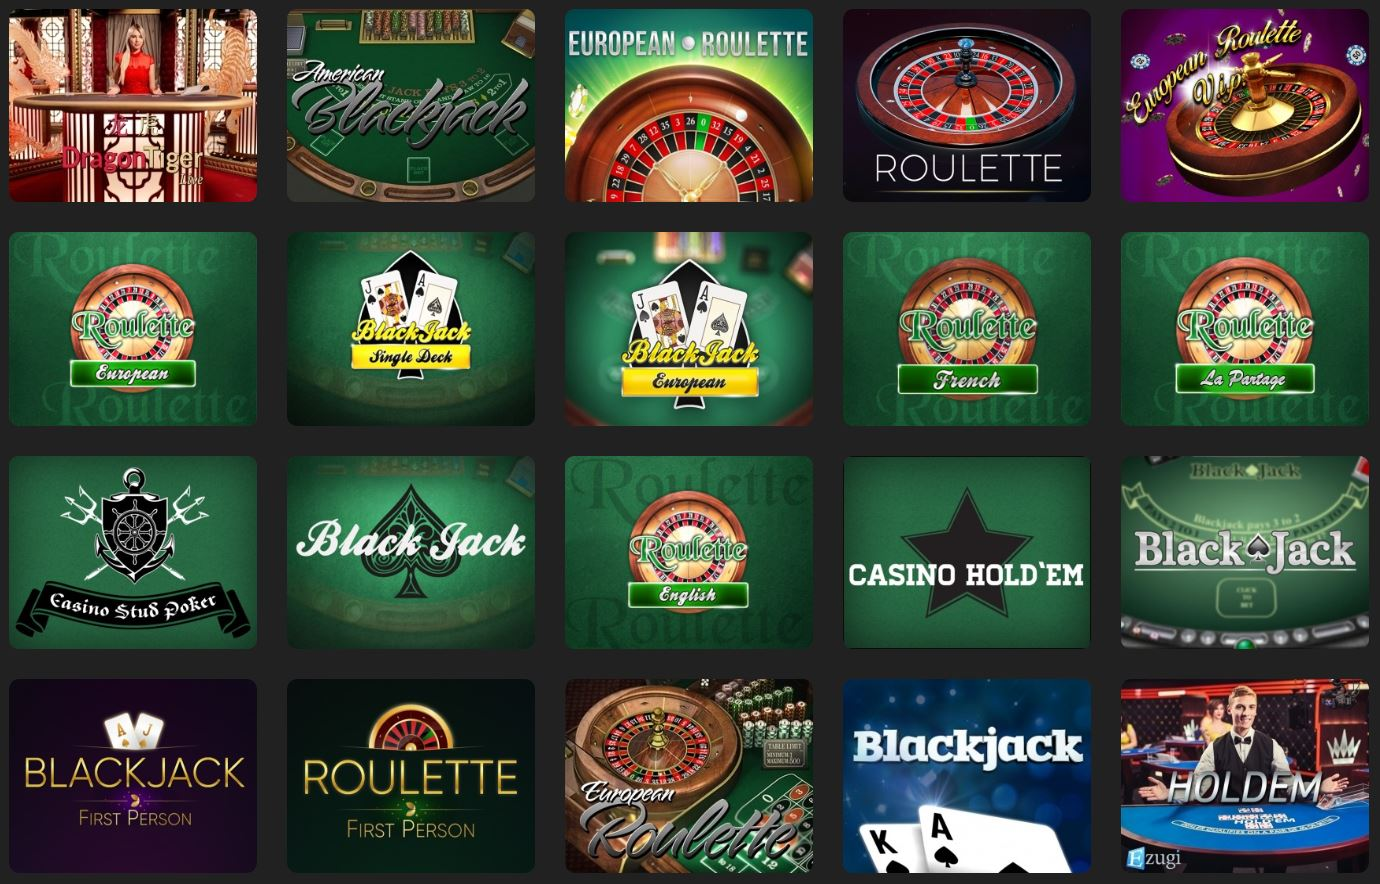 Table Games at 24kCasino